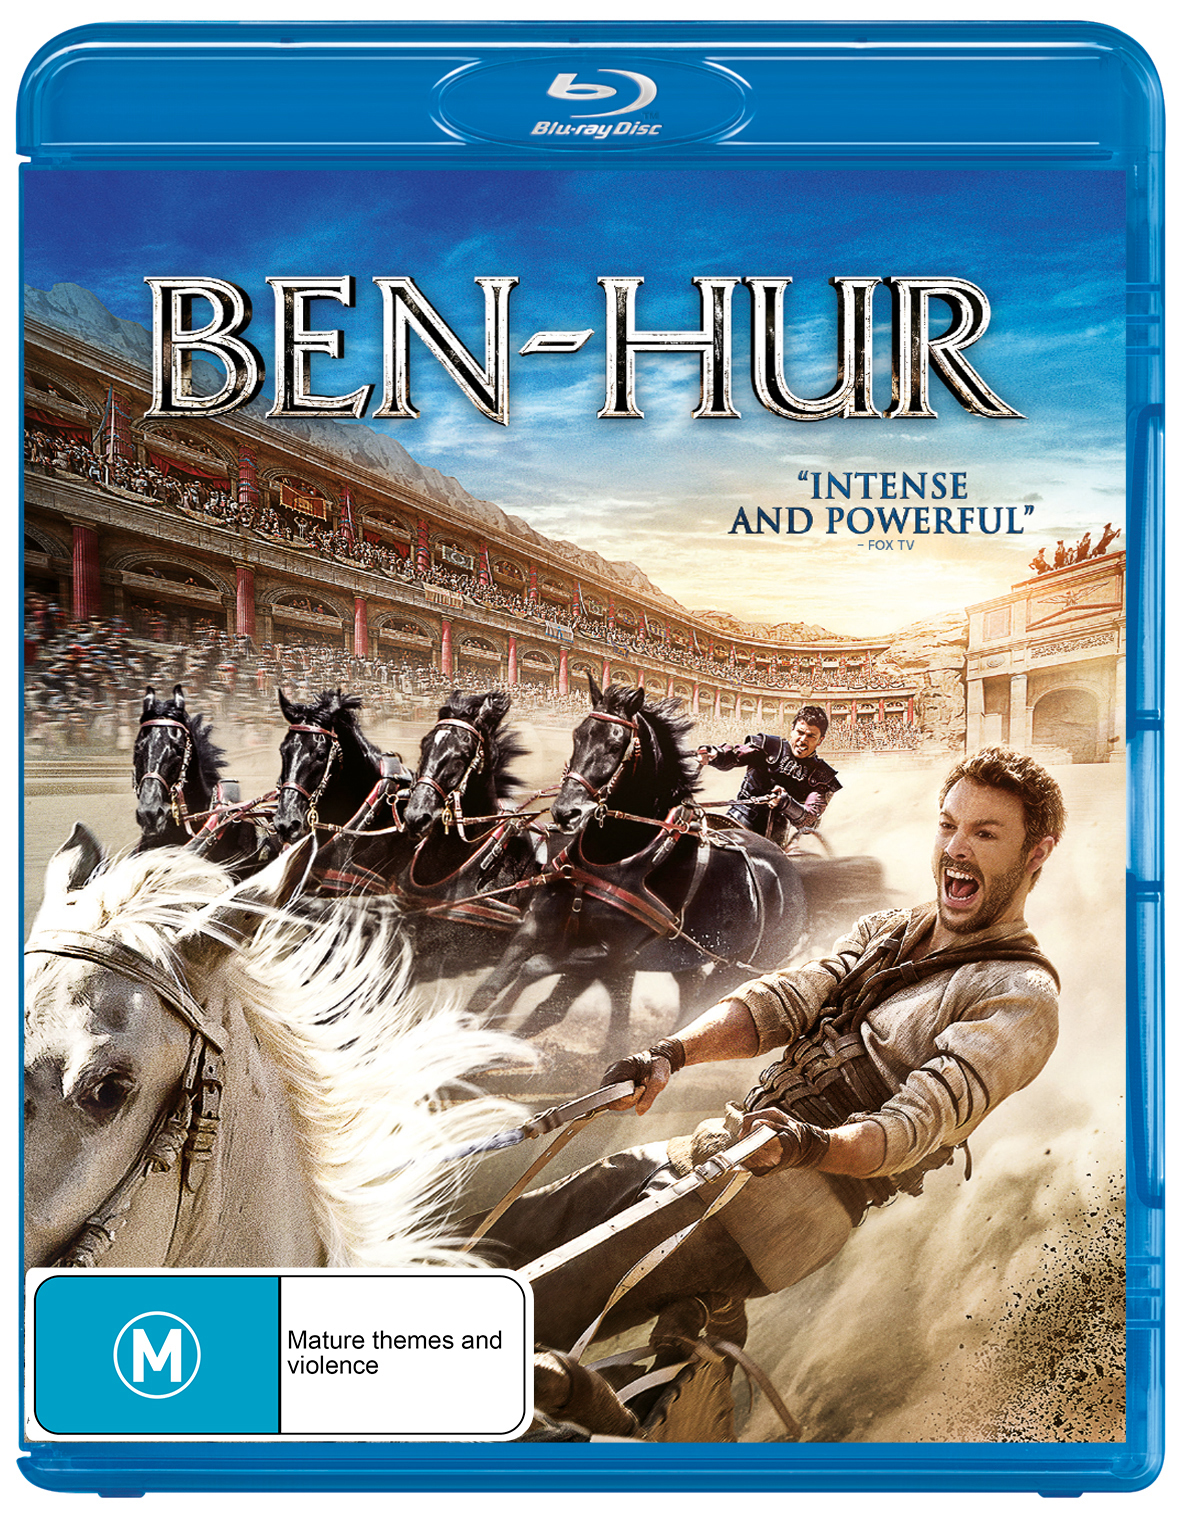 Ben Hur on Blu-ray image